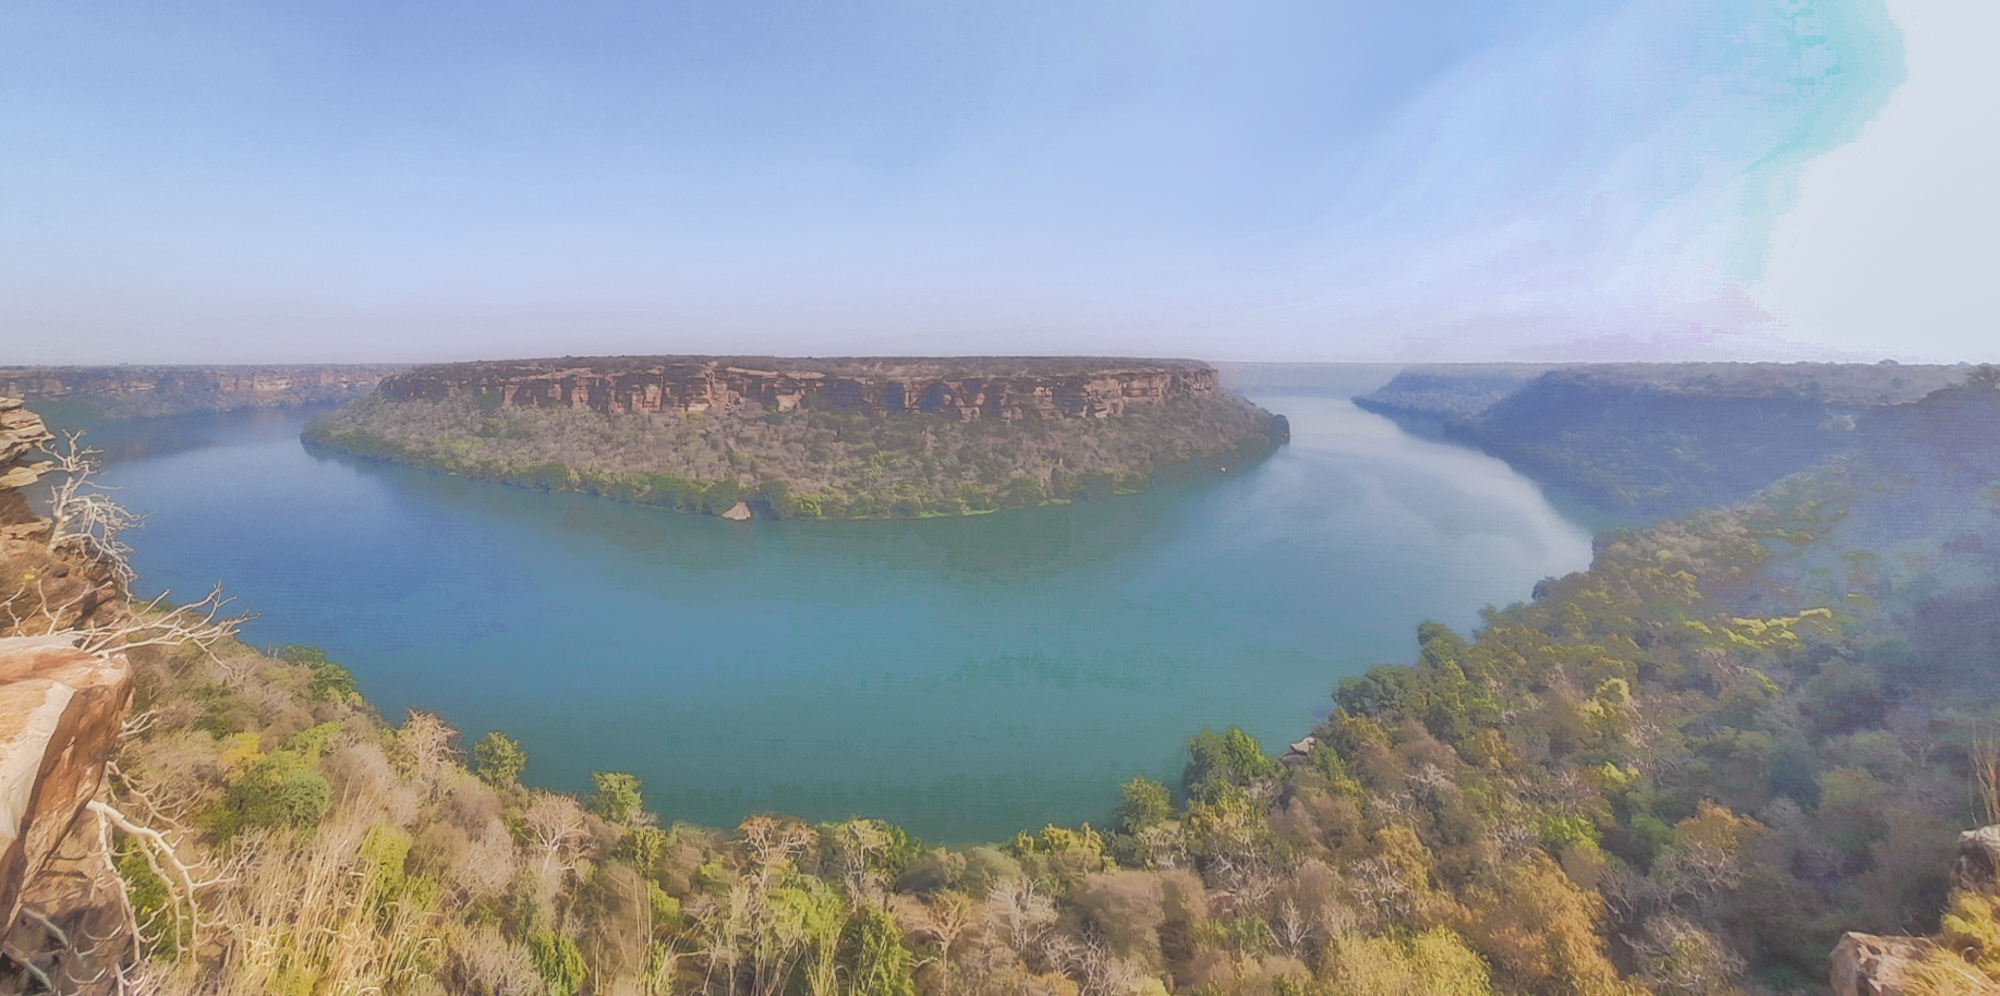 Magnificent view of Chambal river and the plateau as seen from Mukundra Hills National Park in Rajasthan.